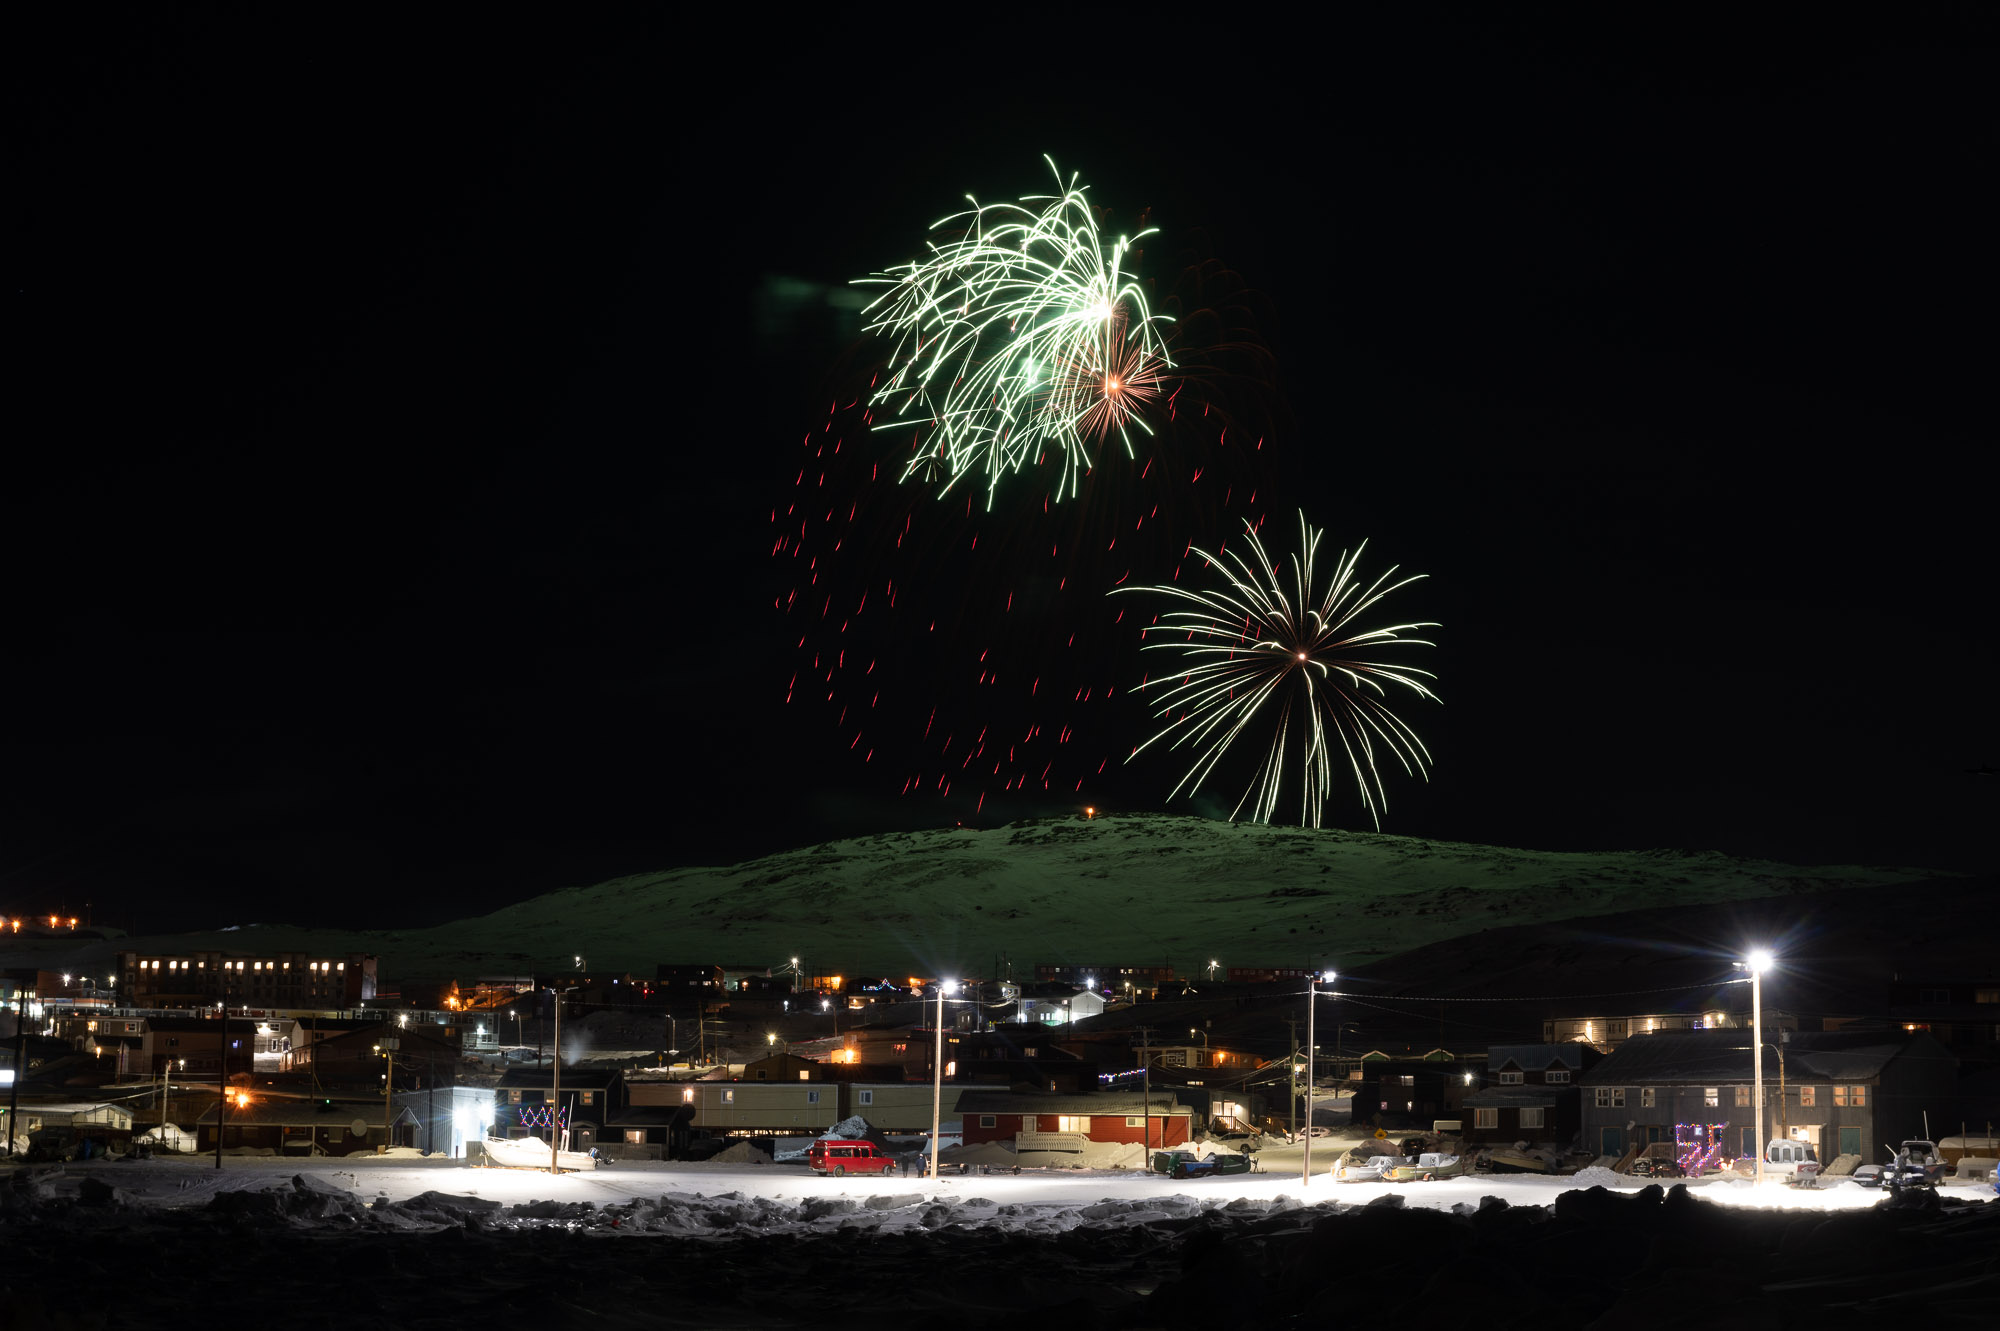 Iqaluit rang in 2021 with two New Year's Eve fireworks displays from the top of Hospital Hill. Organizers 123 Go! dedicated the shows to the memory of elder Inookie Adamie, who died in September at the age of 109. (Photo by Dustin Patar)